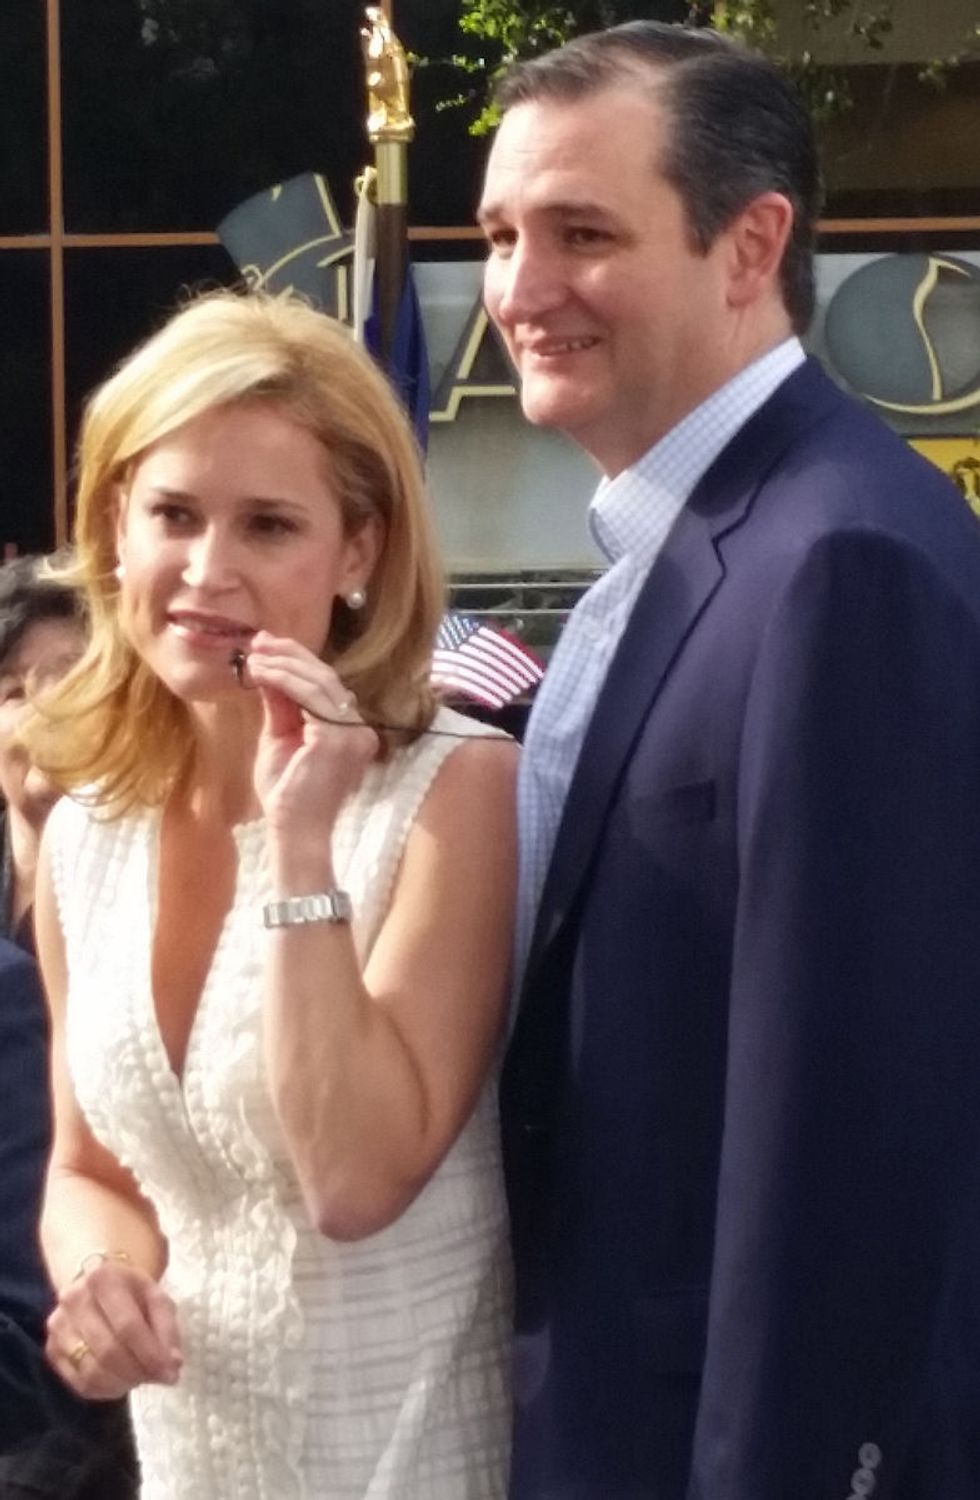 Heidi Cruz Whines About Ted's $174k Senate Salary: 'We're Not Buying a Second Home Anytime Soon'